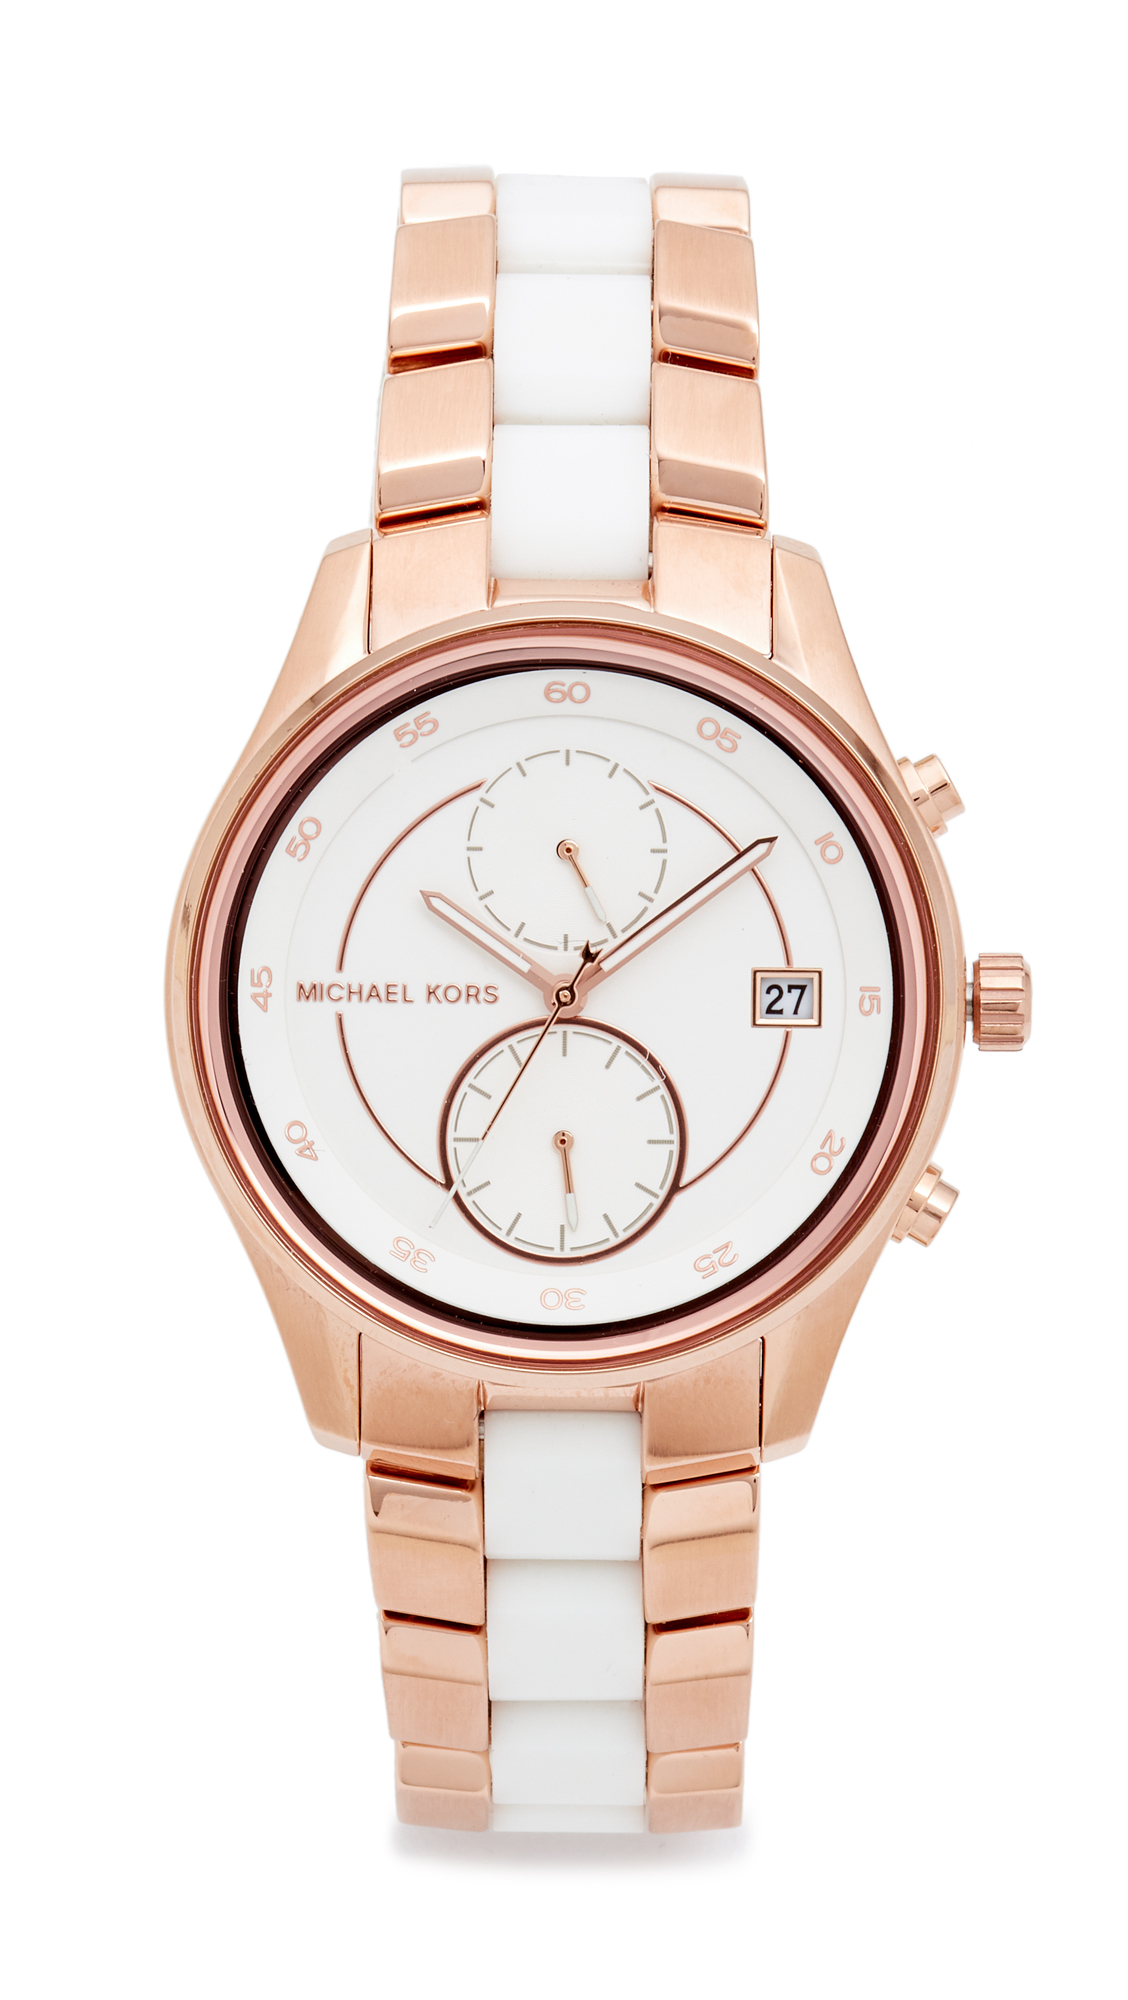 michael kors female michael kors briar watch rose goldwhite